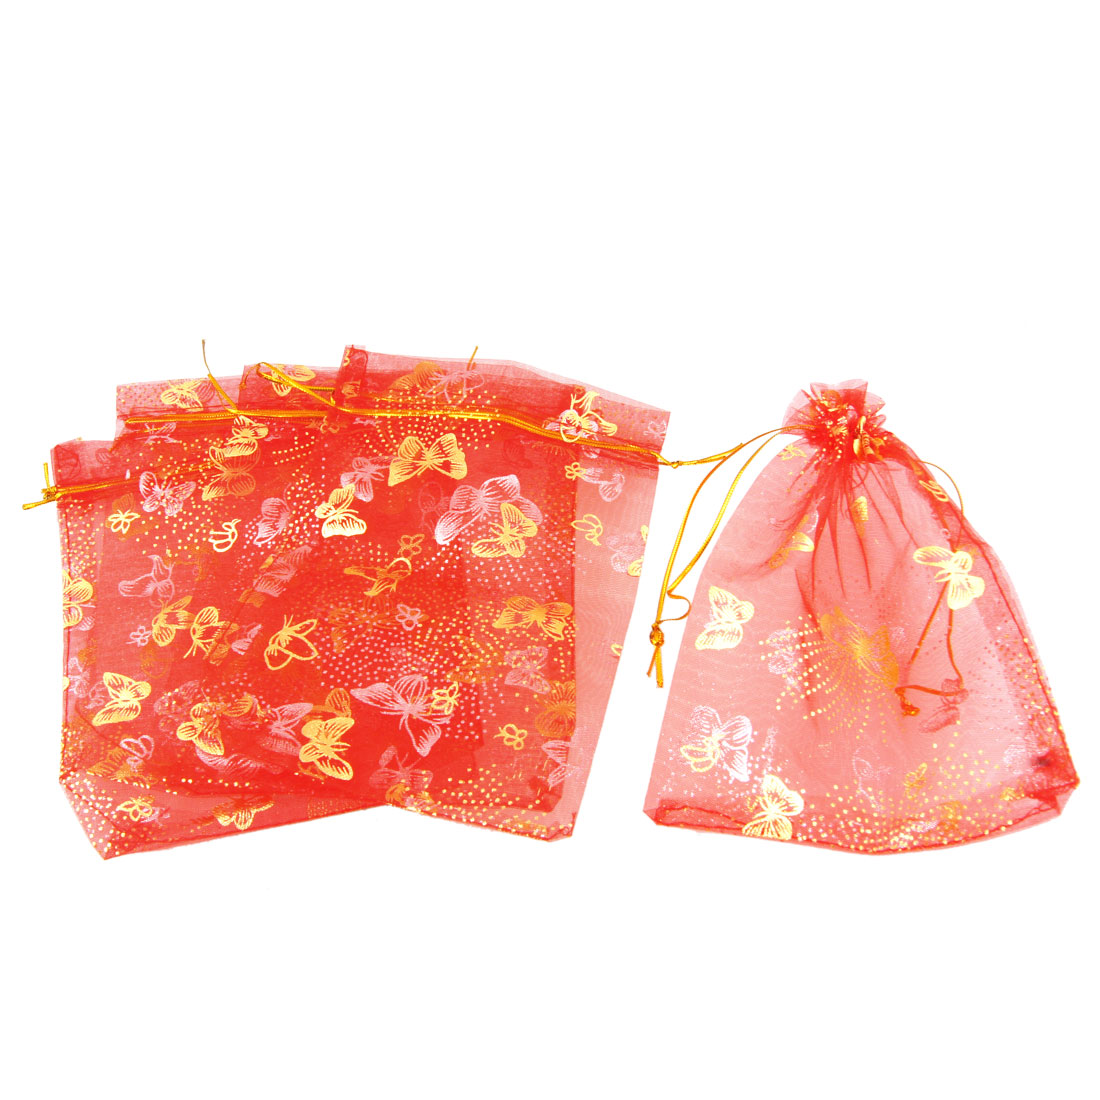 5 Pcs Red Organza Dot Butterfly Pattern Wedding Party Gift Pouch Bag